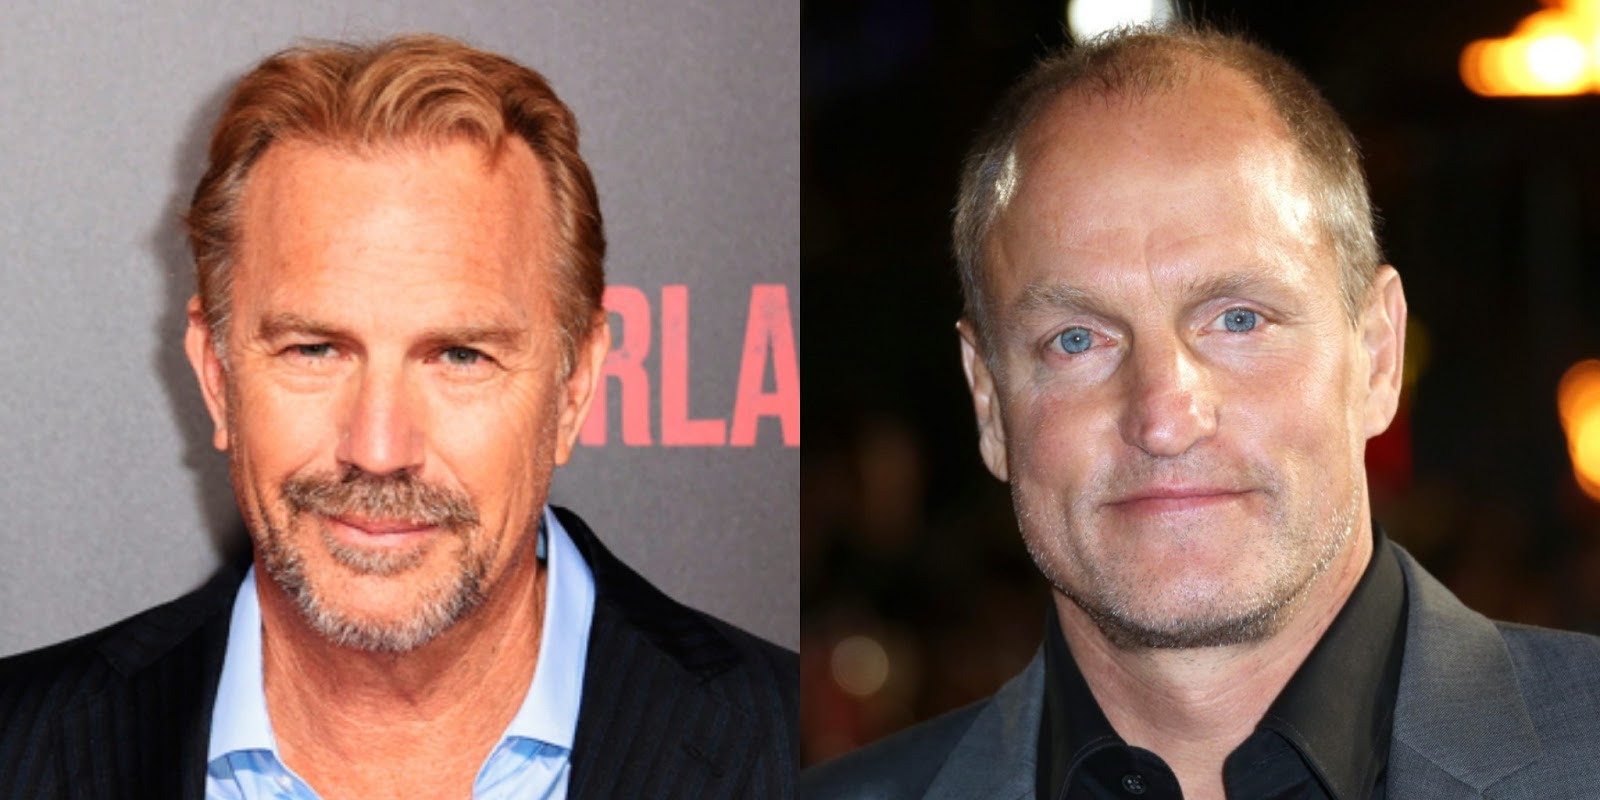 Kevin Costner And Woody Harrelson In Talks For Netflix Bonnie & Clyde Crime Drama, HIGHWAYMAN